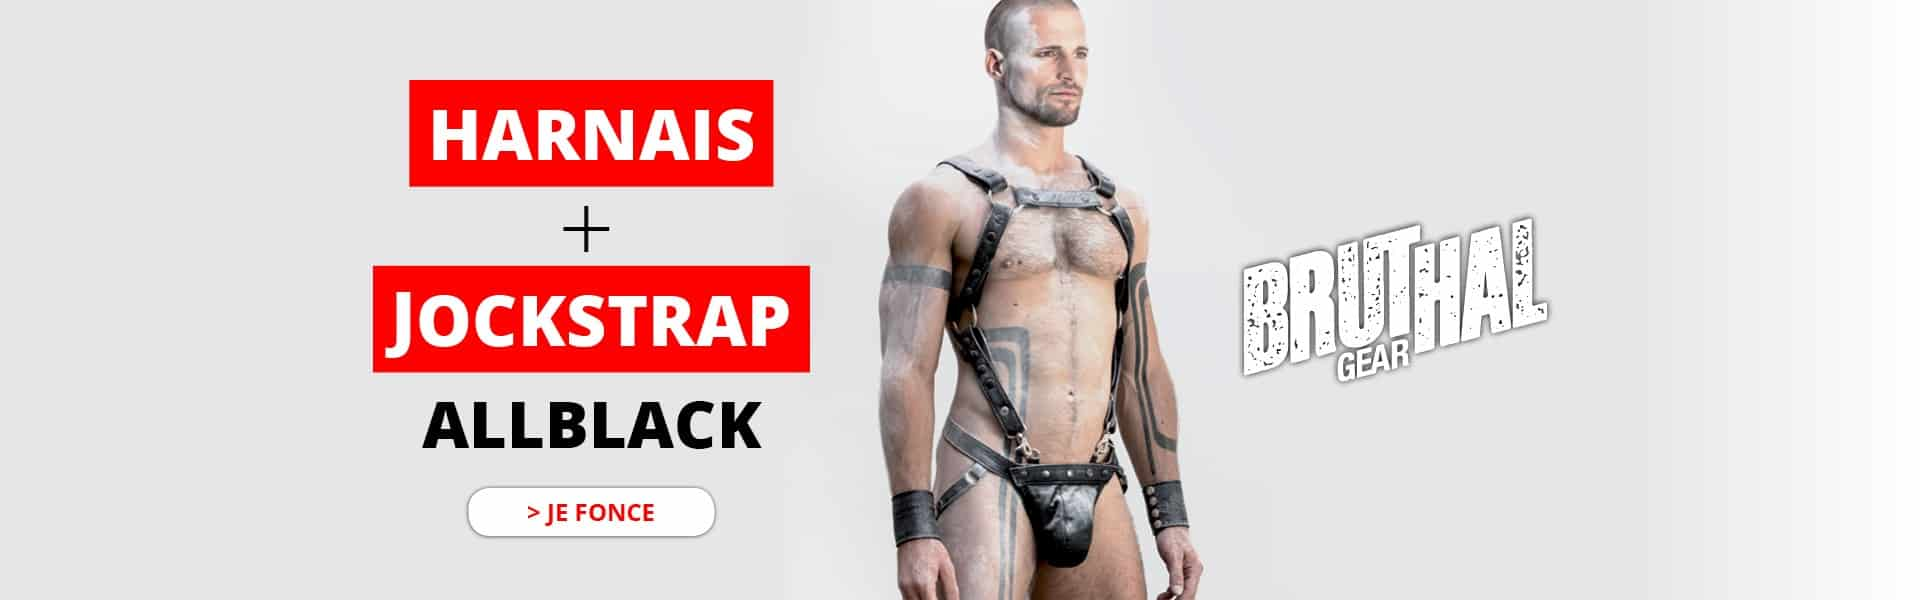 Harnais et Jockstrap All Black